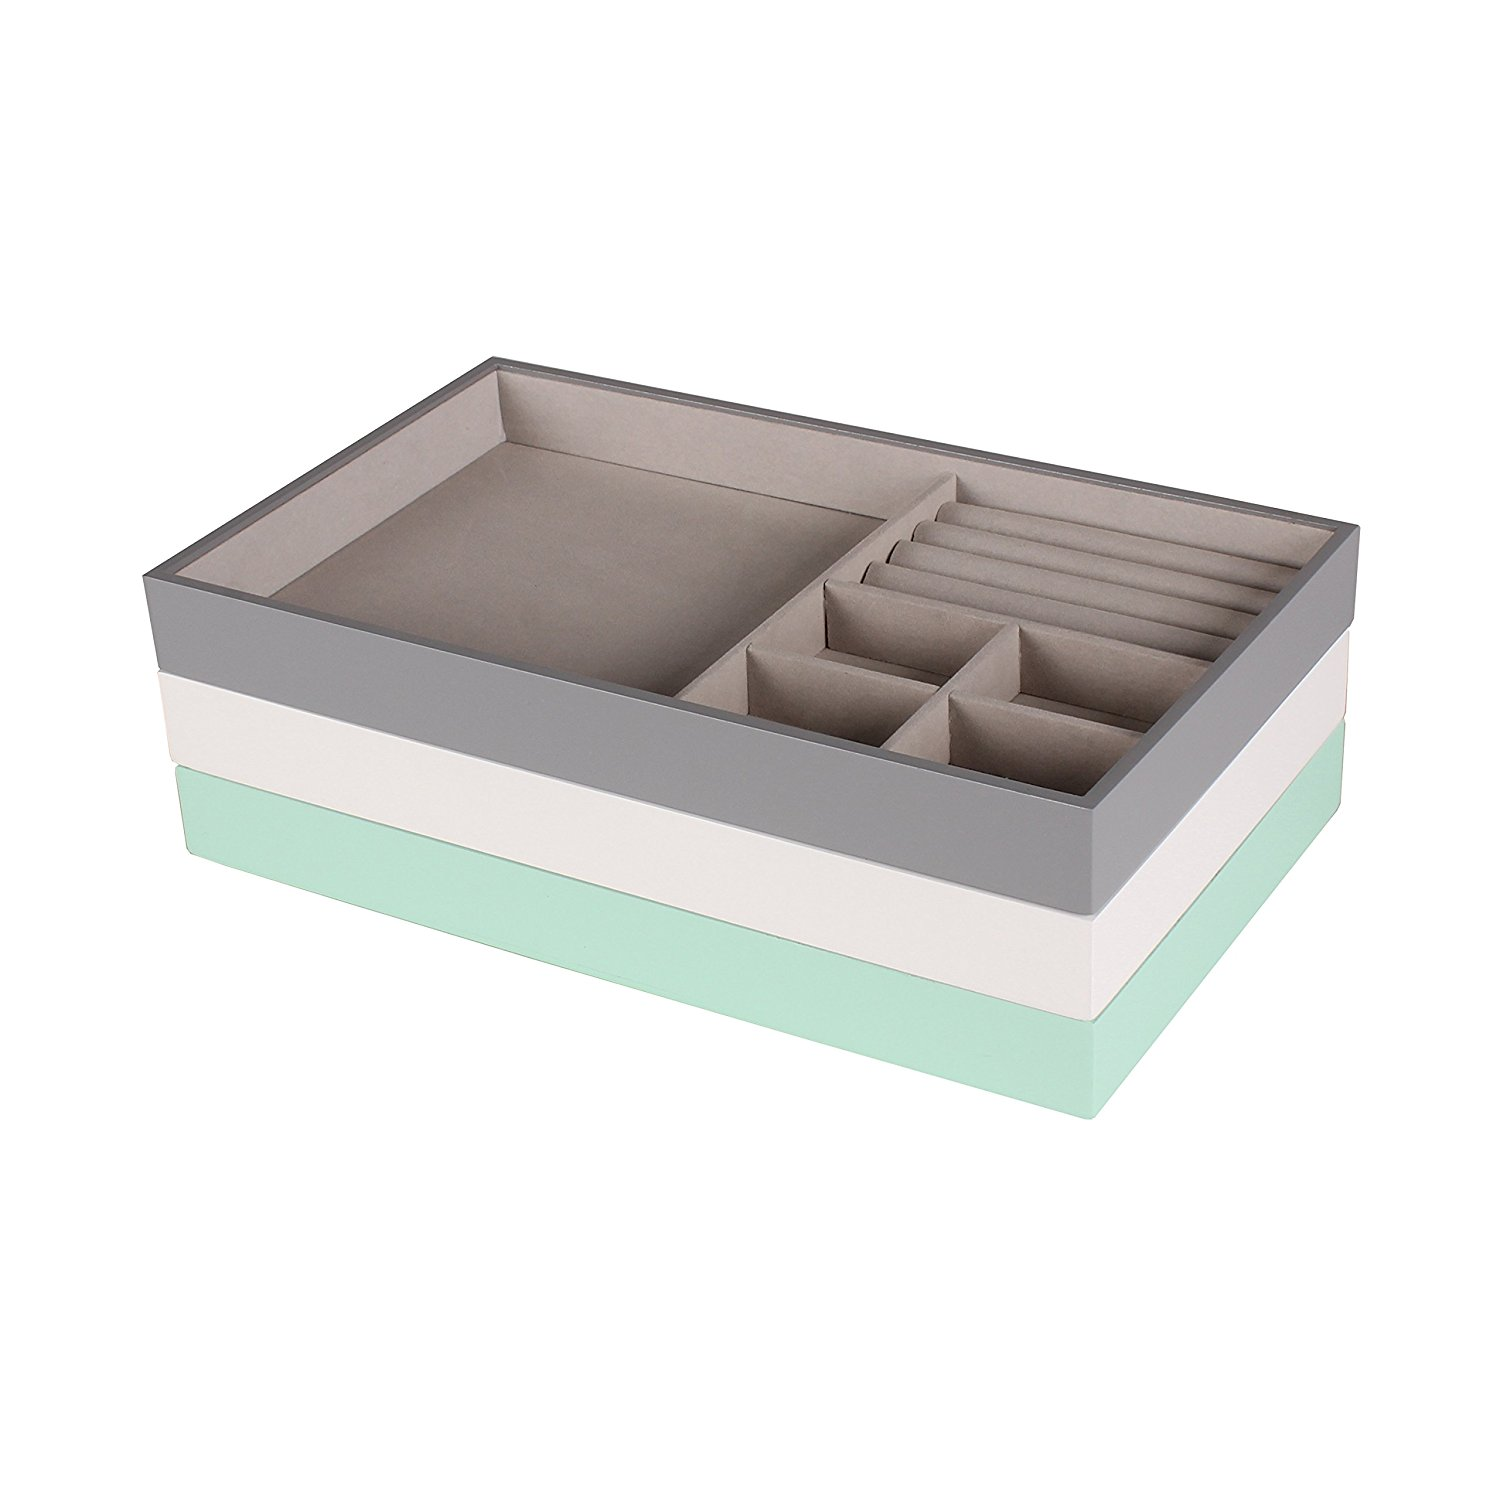 Kate and Laurel Myrcella Jewelry Storage Stackable Trays, Set of 3, Mint Green, Gray, and White